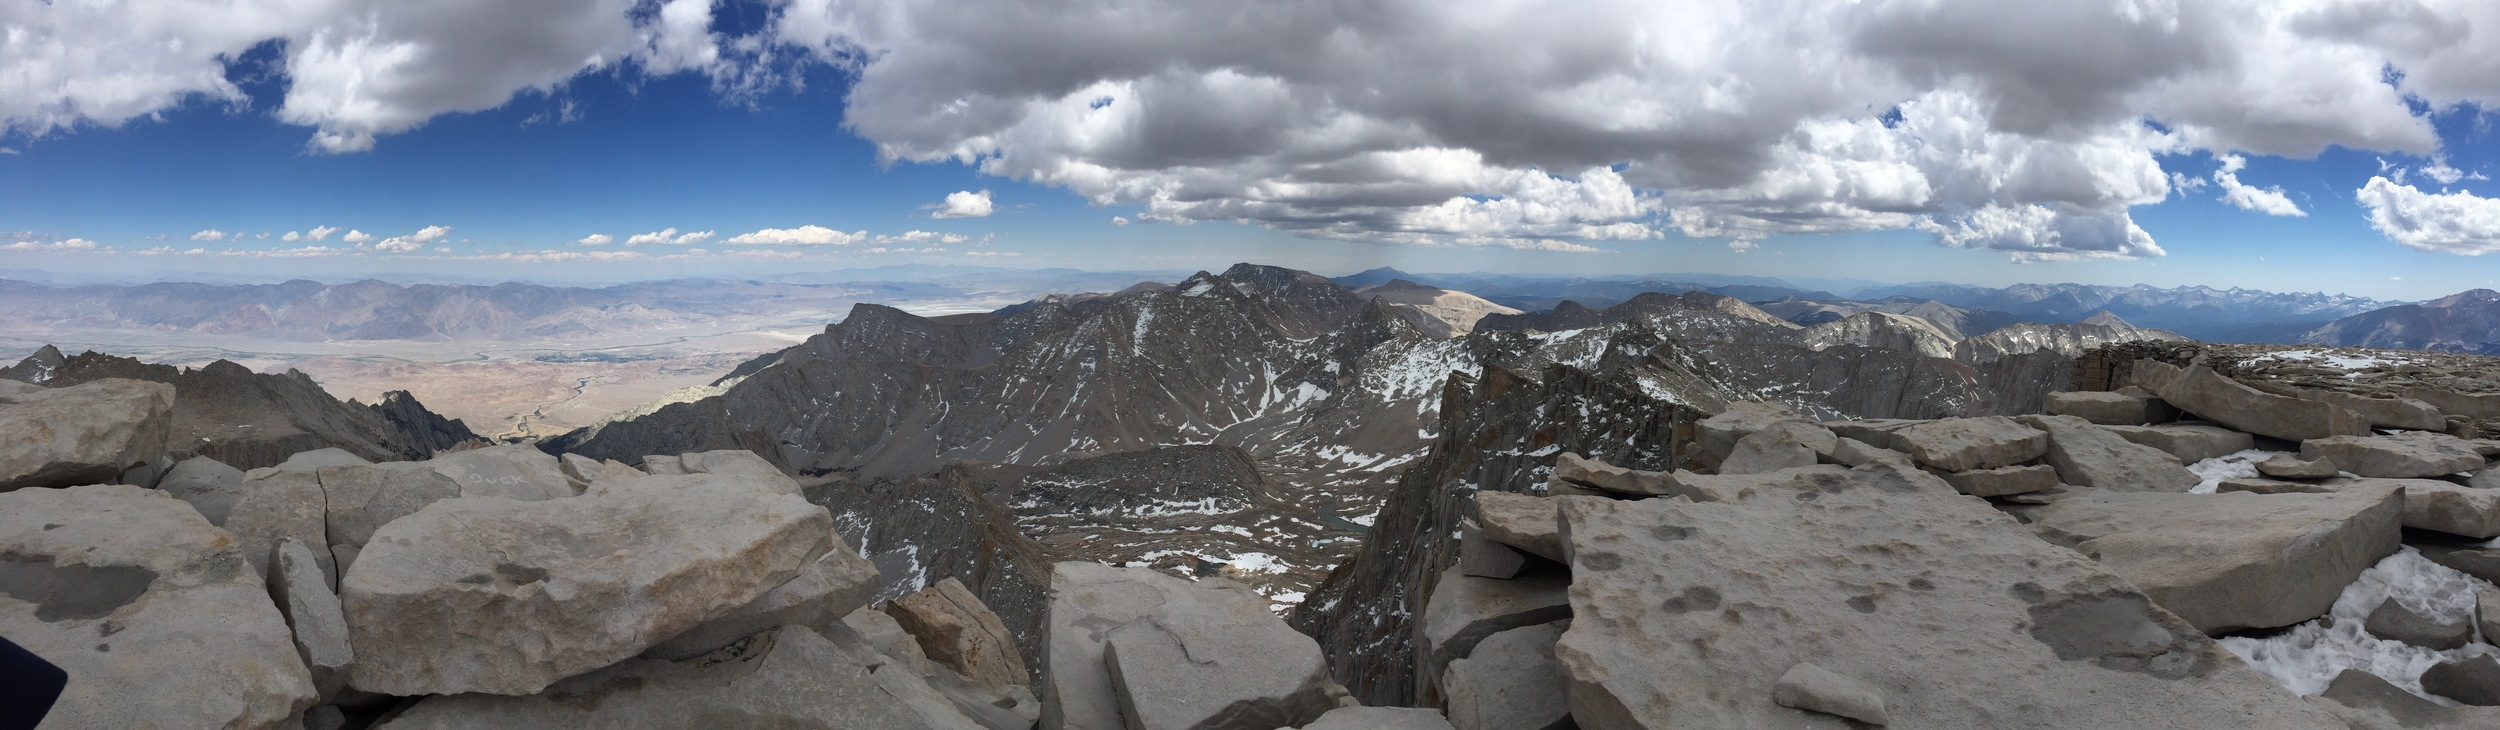 My son, JC, conquers Mt Whitney one step at a time,June 2015